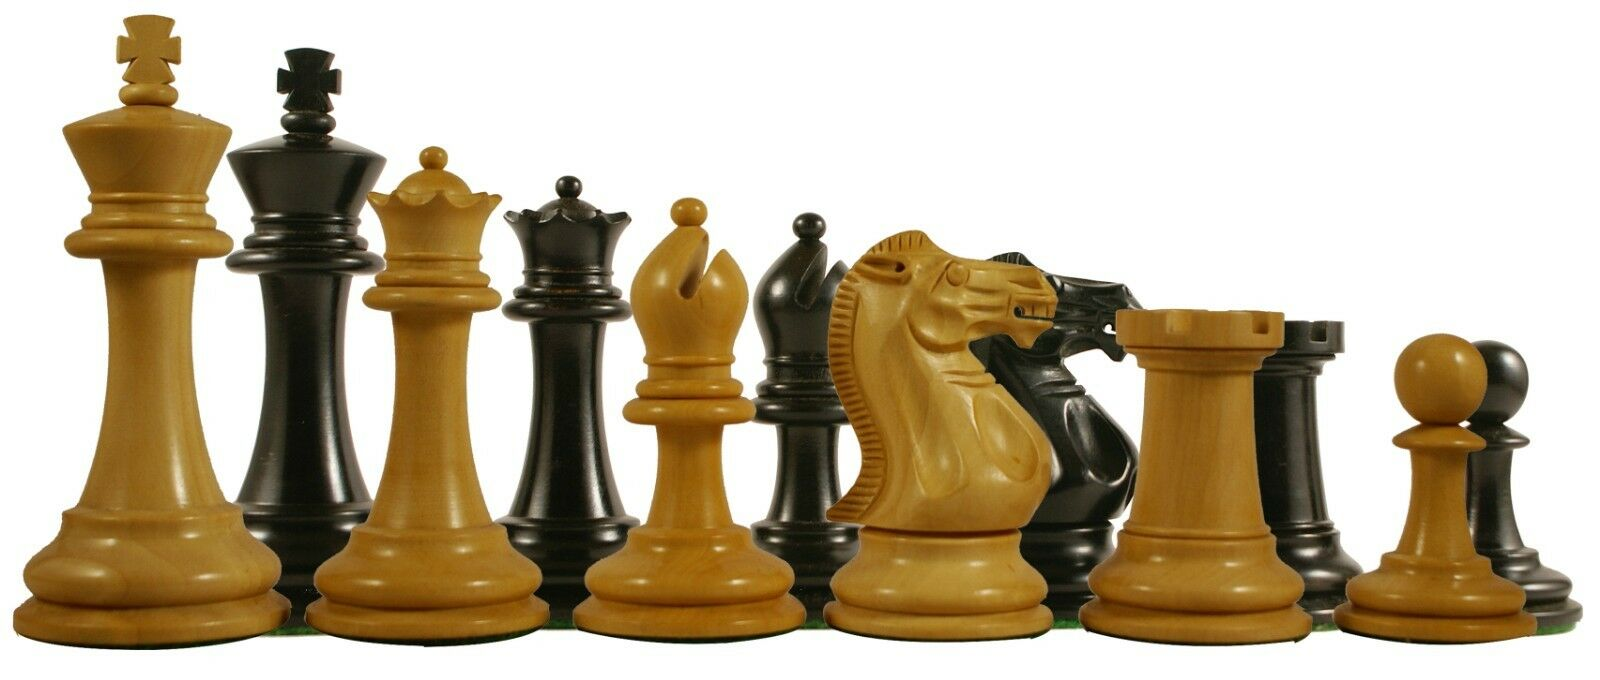 Paul Morphy Series Premium Staunton 3.5  Chess Pieces in Ebonised & Box Wood